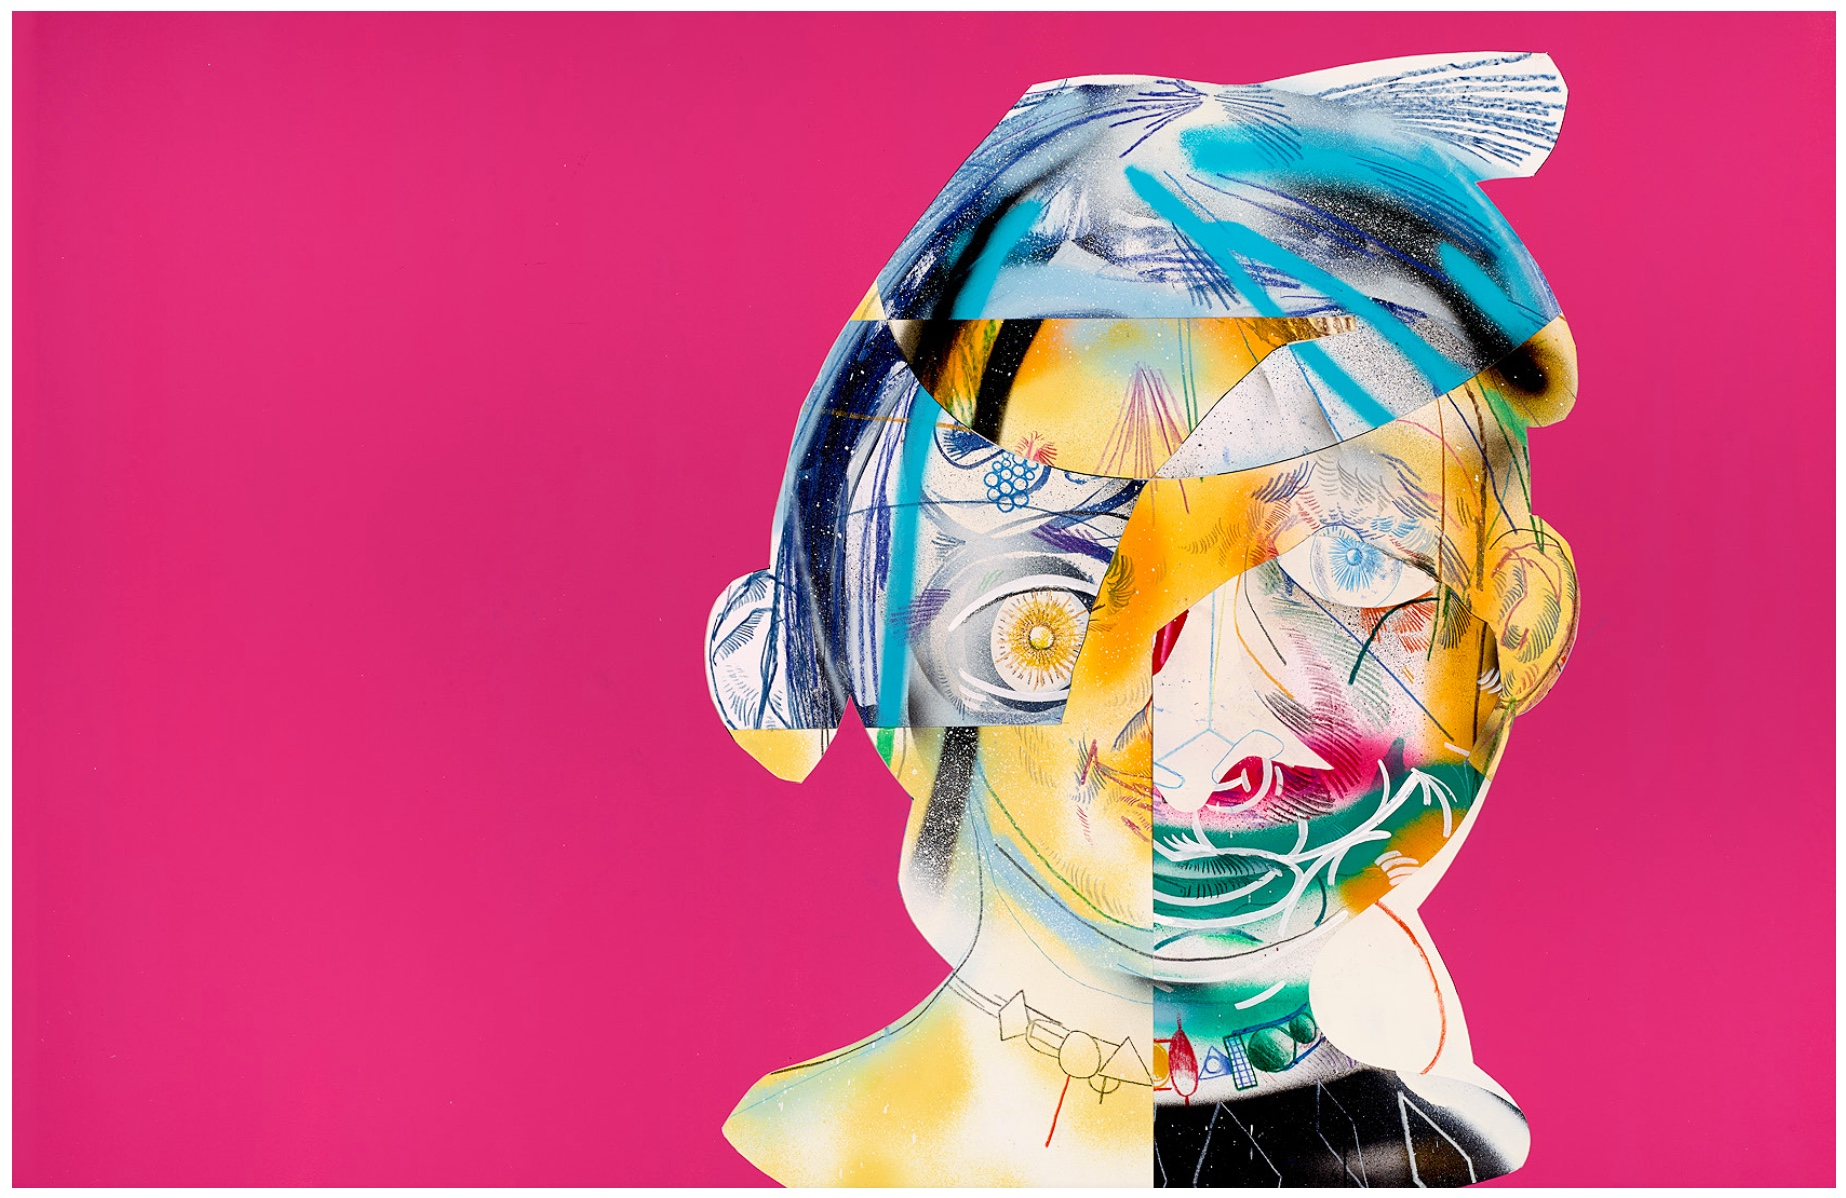 Complicated   (Pink)  Mixed media on paper  2013  37 x 25 In  $6,500.00